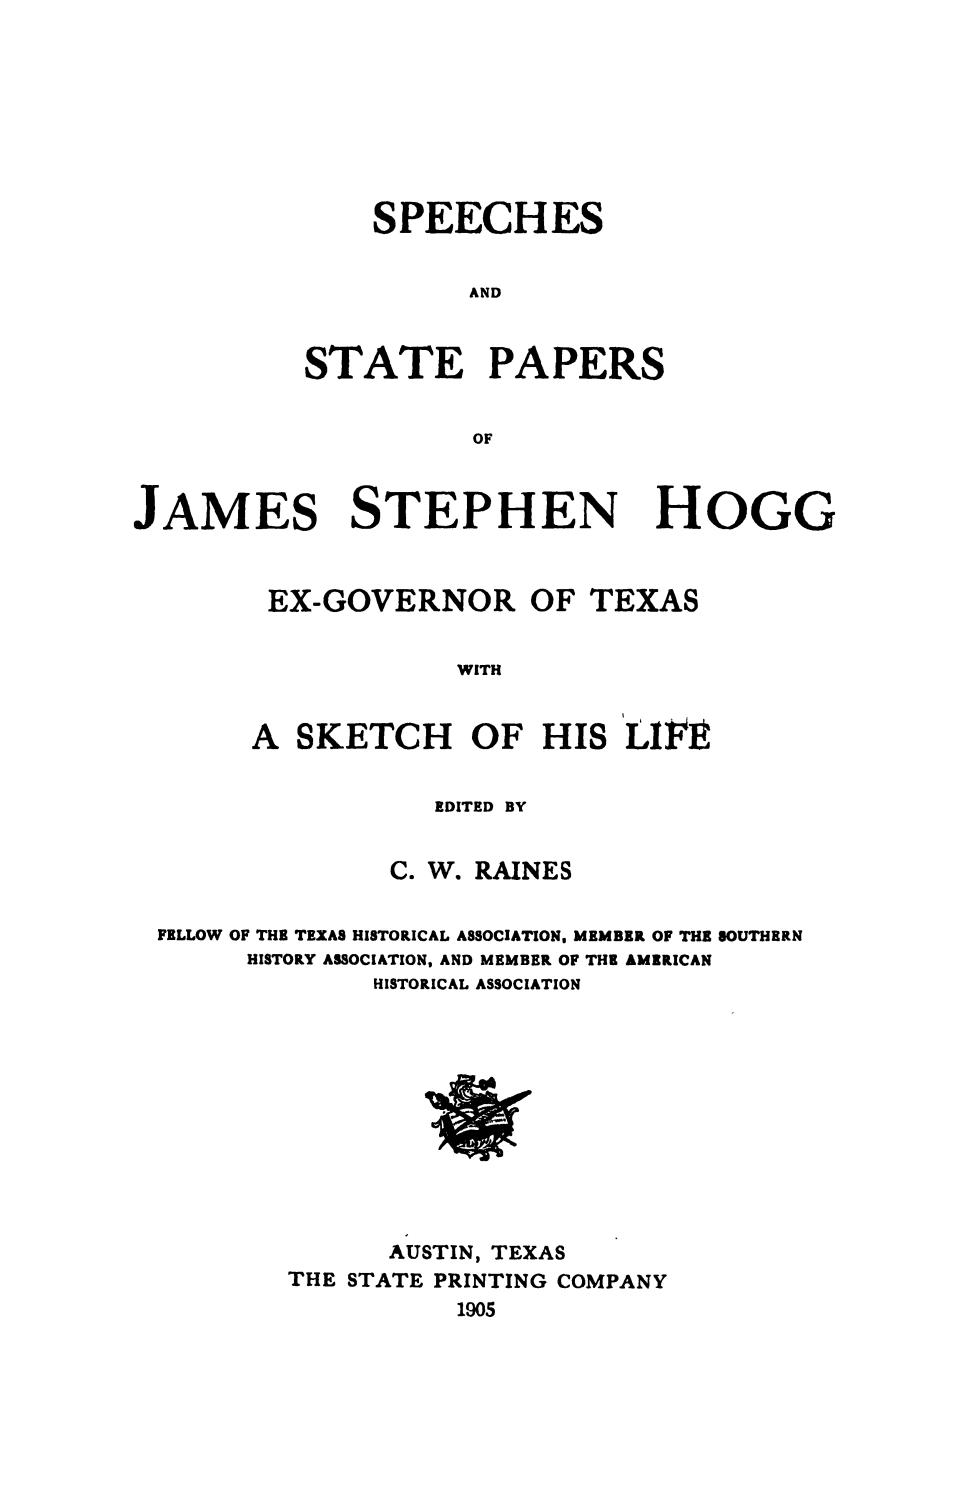 Speeches and state papers of James Stephen Hogg, ex-governor of Texas, with a sketch of his life; ed. by C. W. Raines.                                                                                                      Title Page